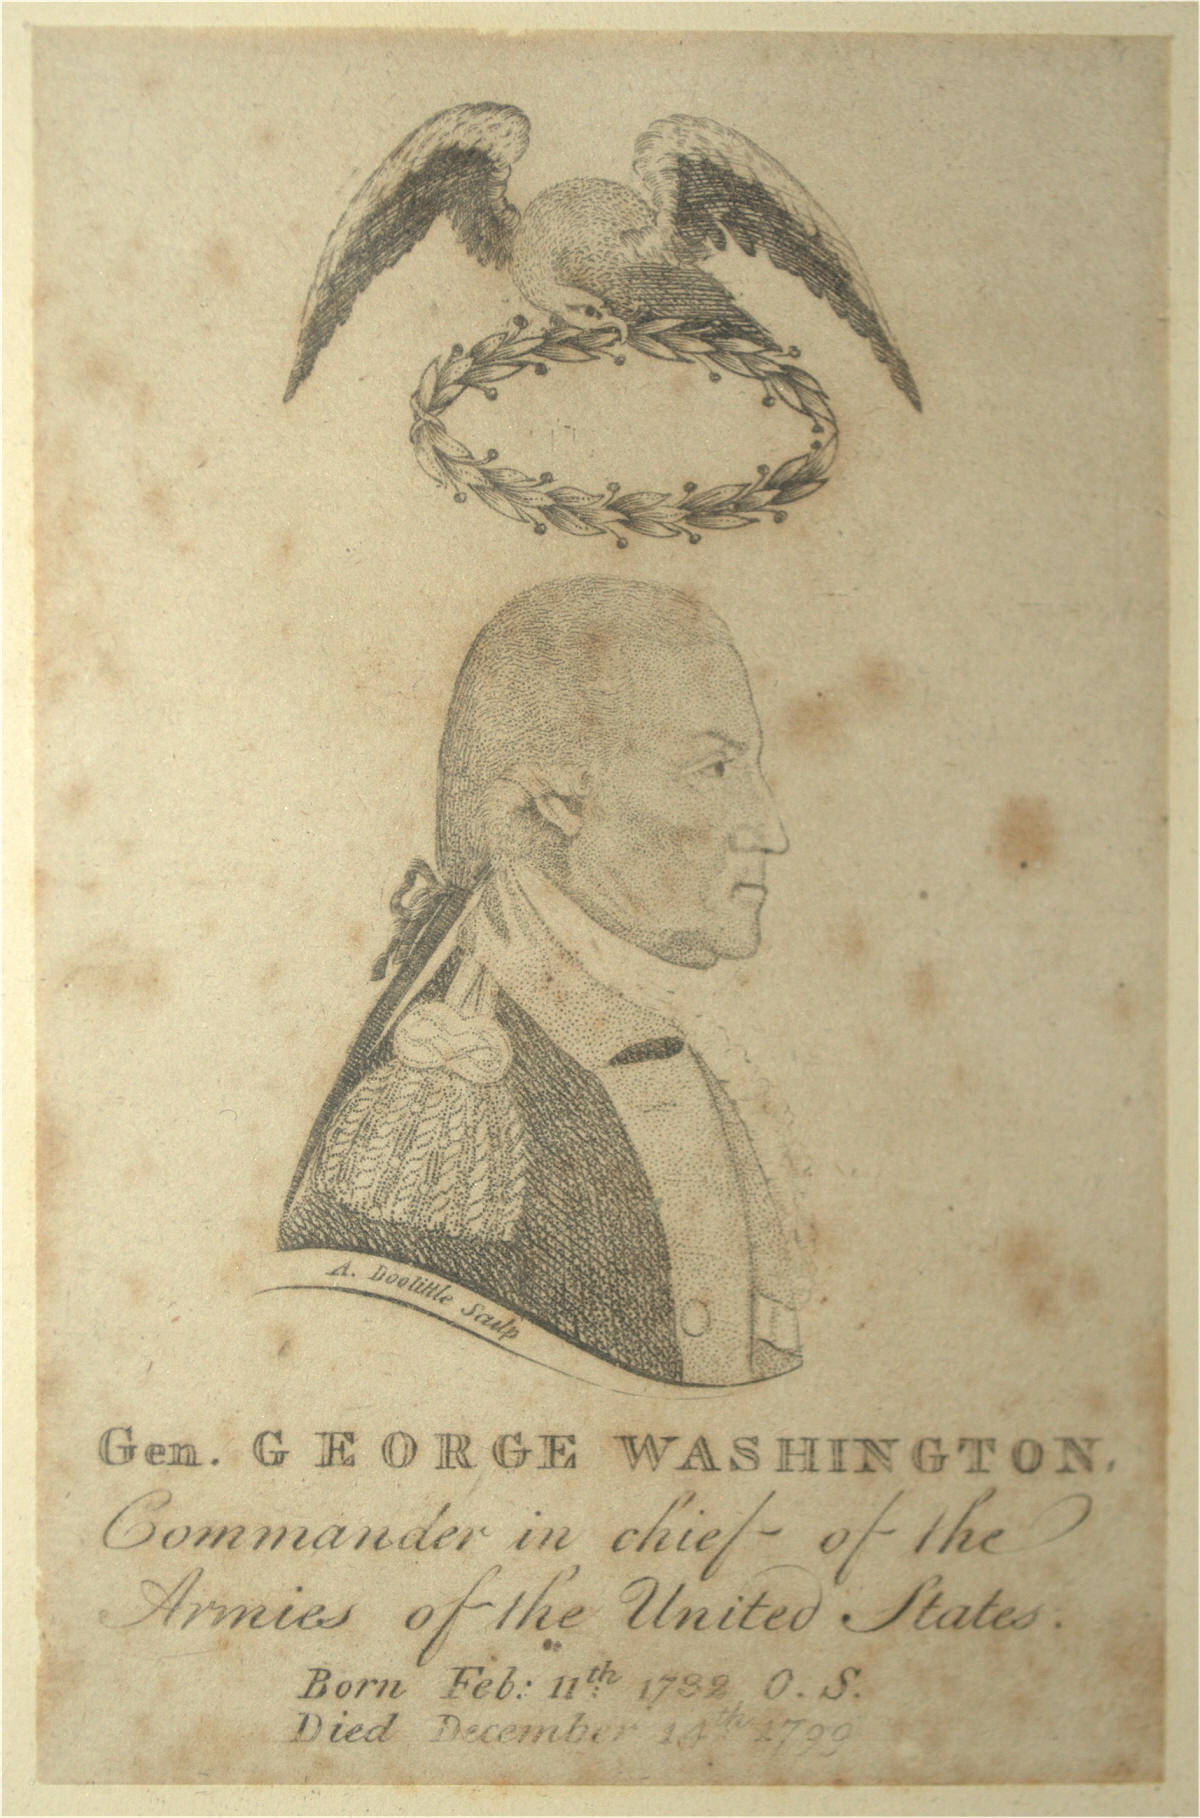 George Washington engraving by Amos Doolittle